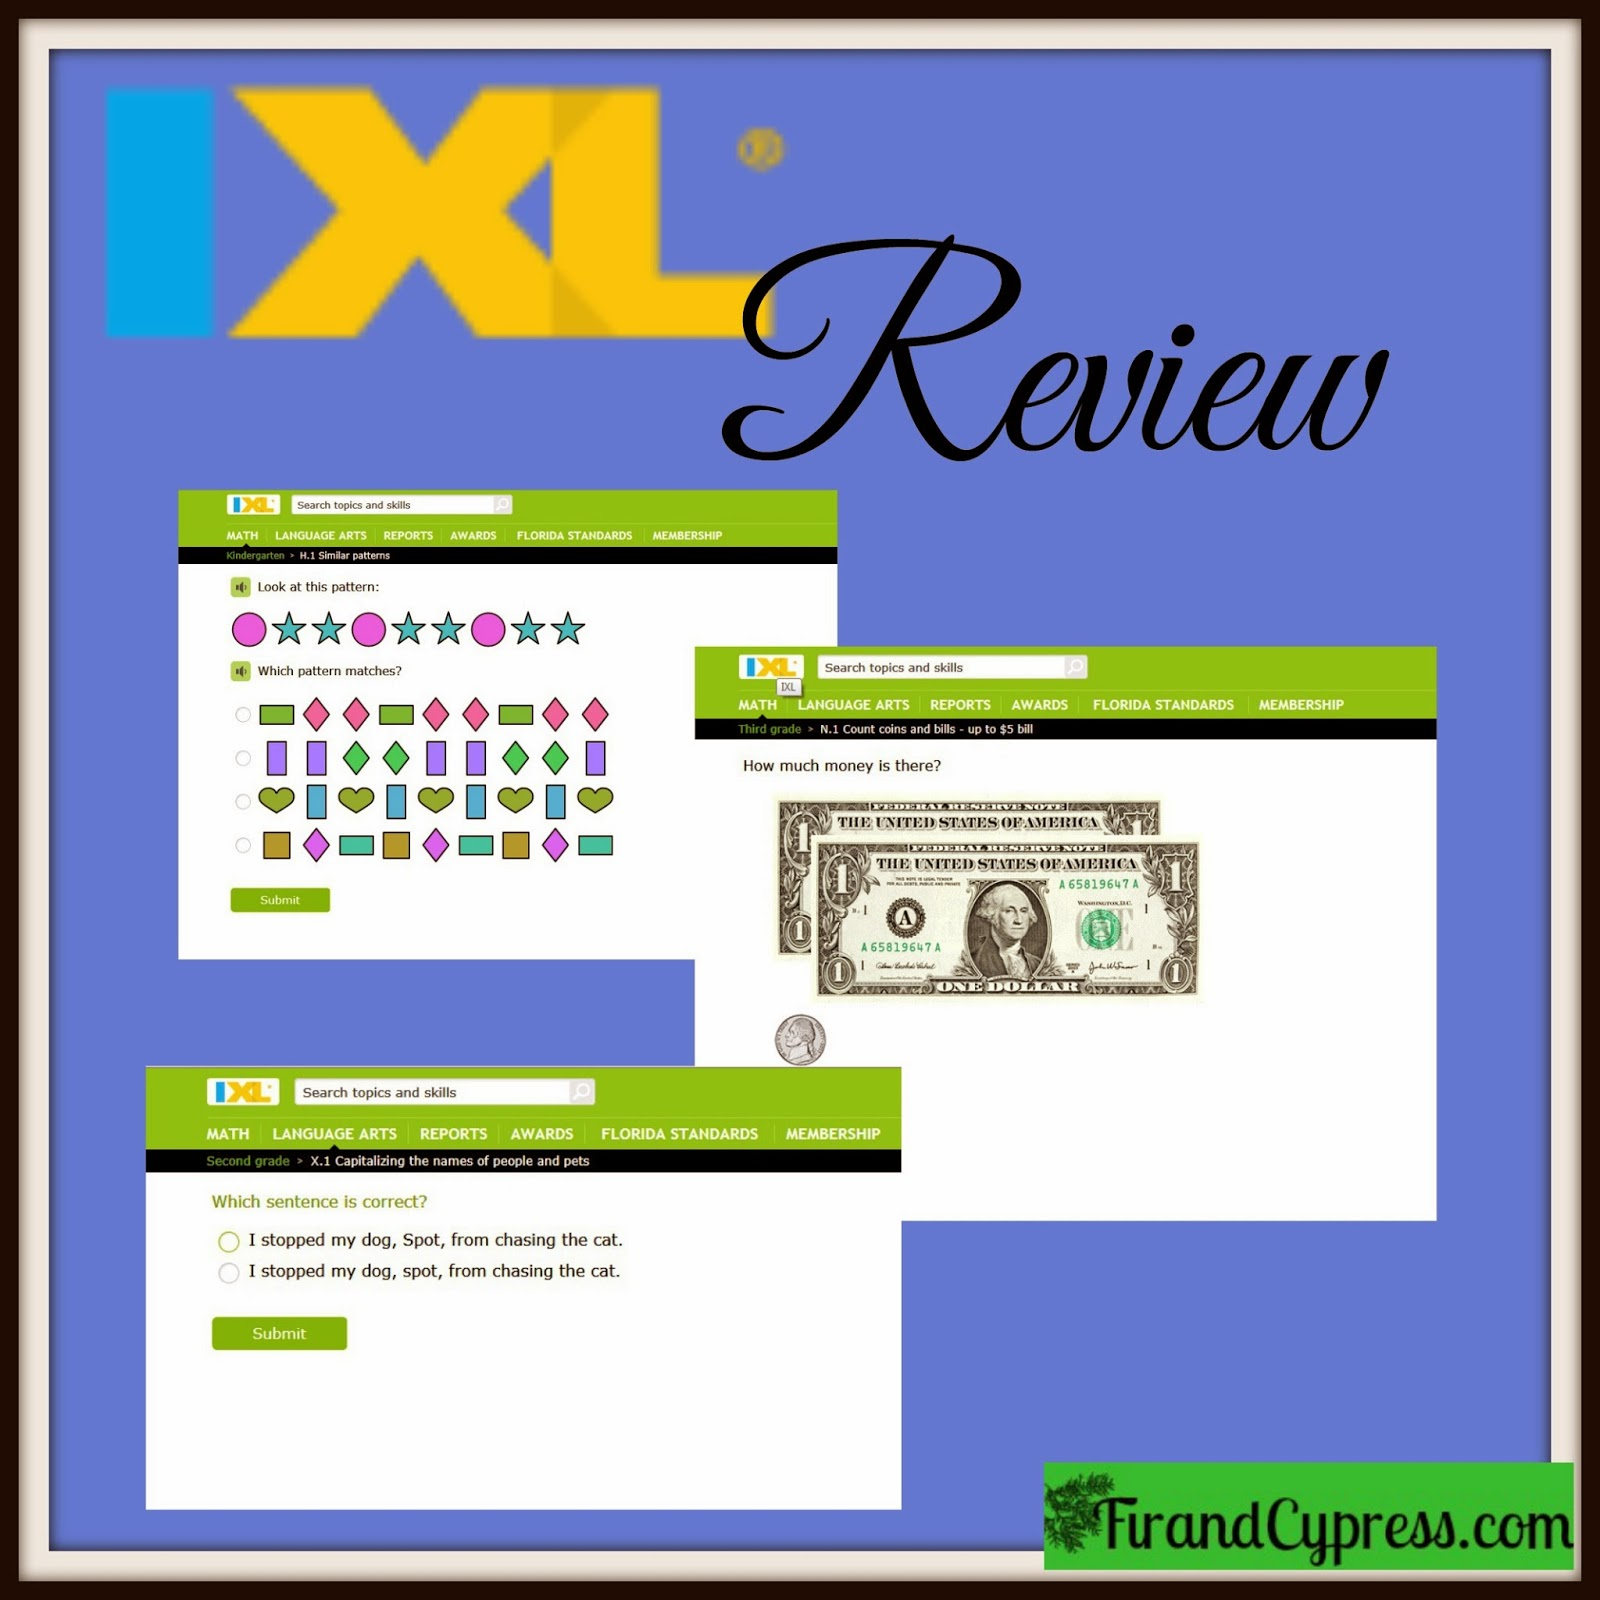 Fir and Cypress: IXL Math and Language Arts Online Review